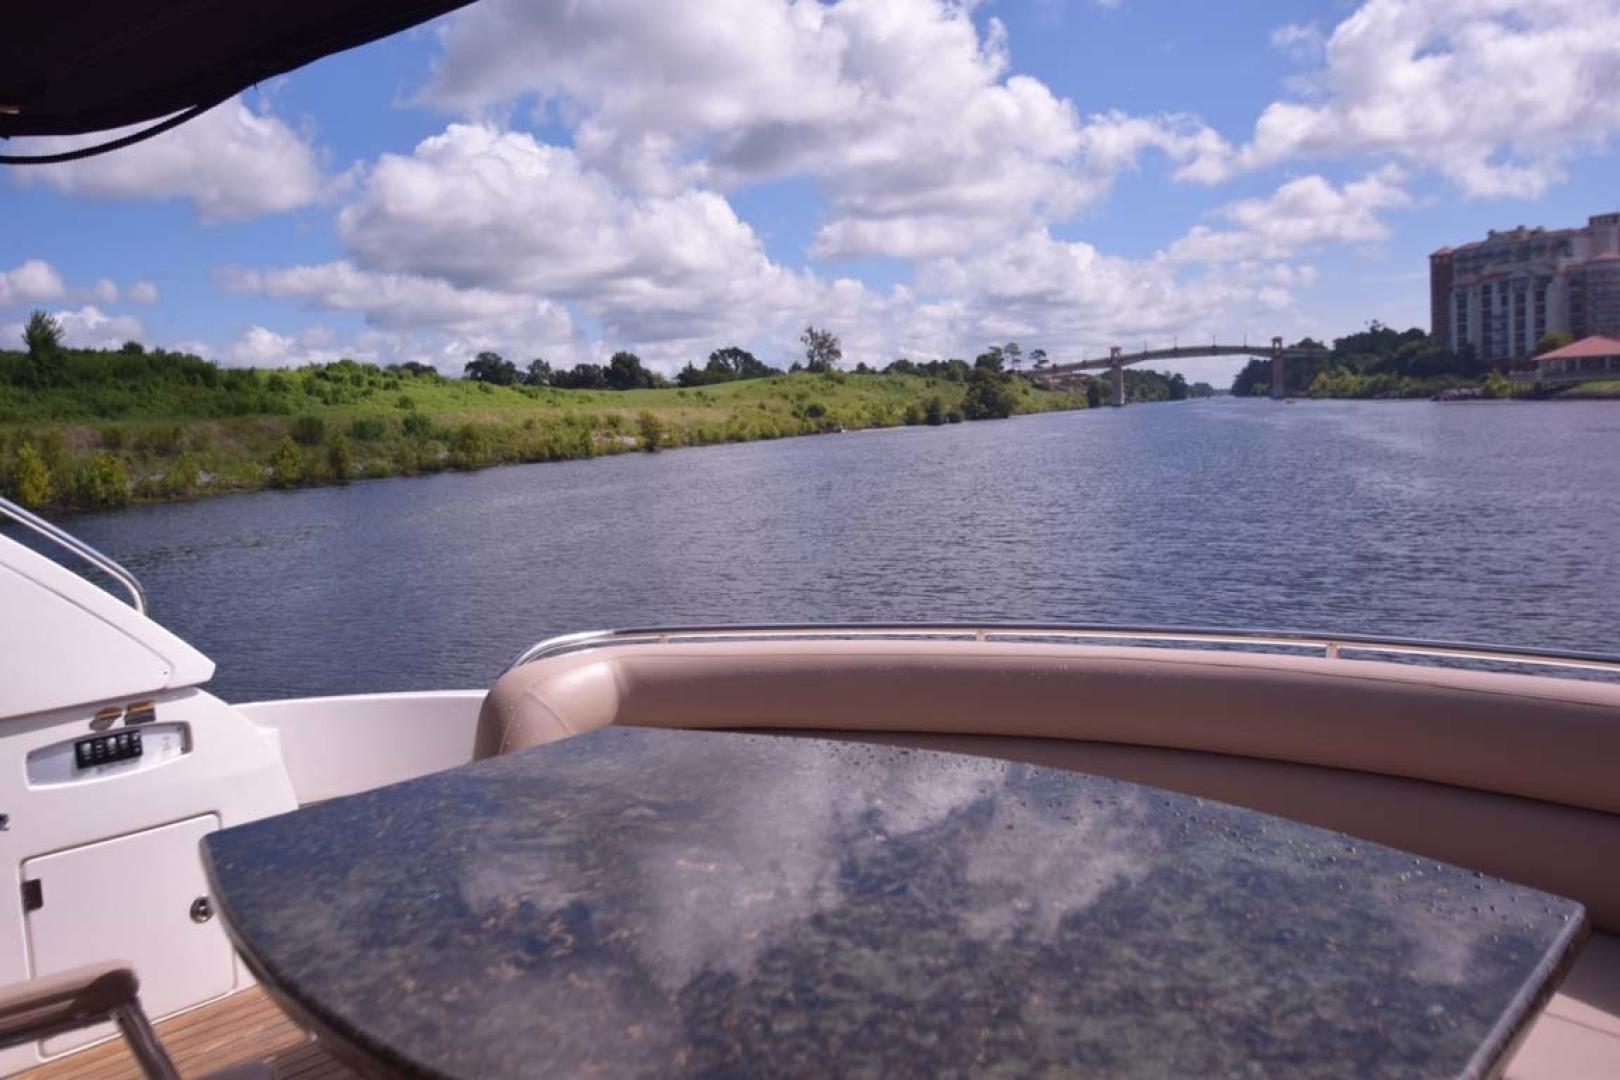 Sunseeker-Predator 2003-Low Profile PALM BEACH-Florida-United States-Aft Table To Transom View-1576390 | Thumbnail